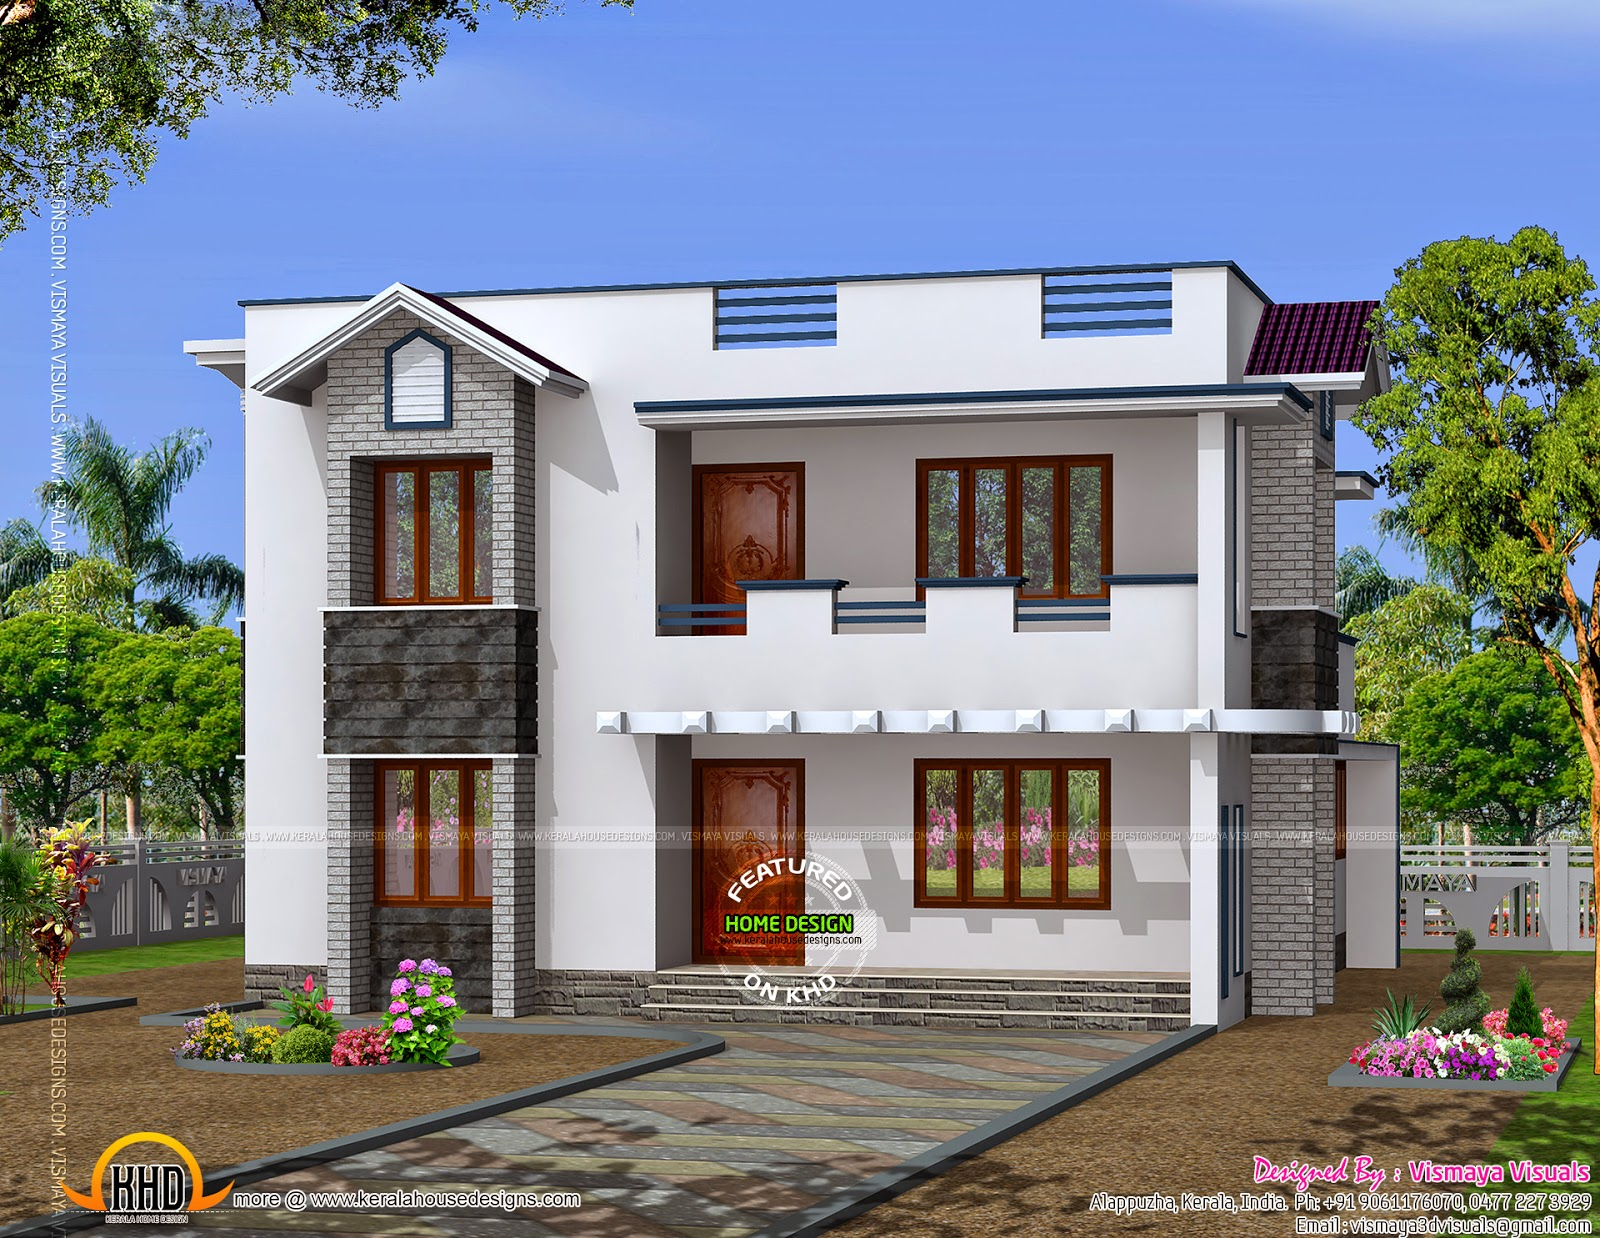 Simple design home kerala home design and floor plans for Simple house plans